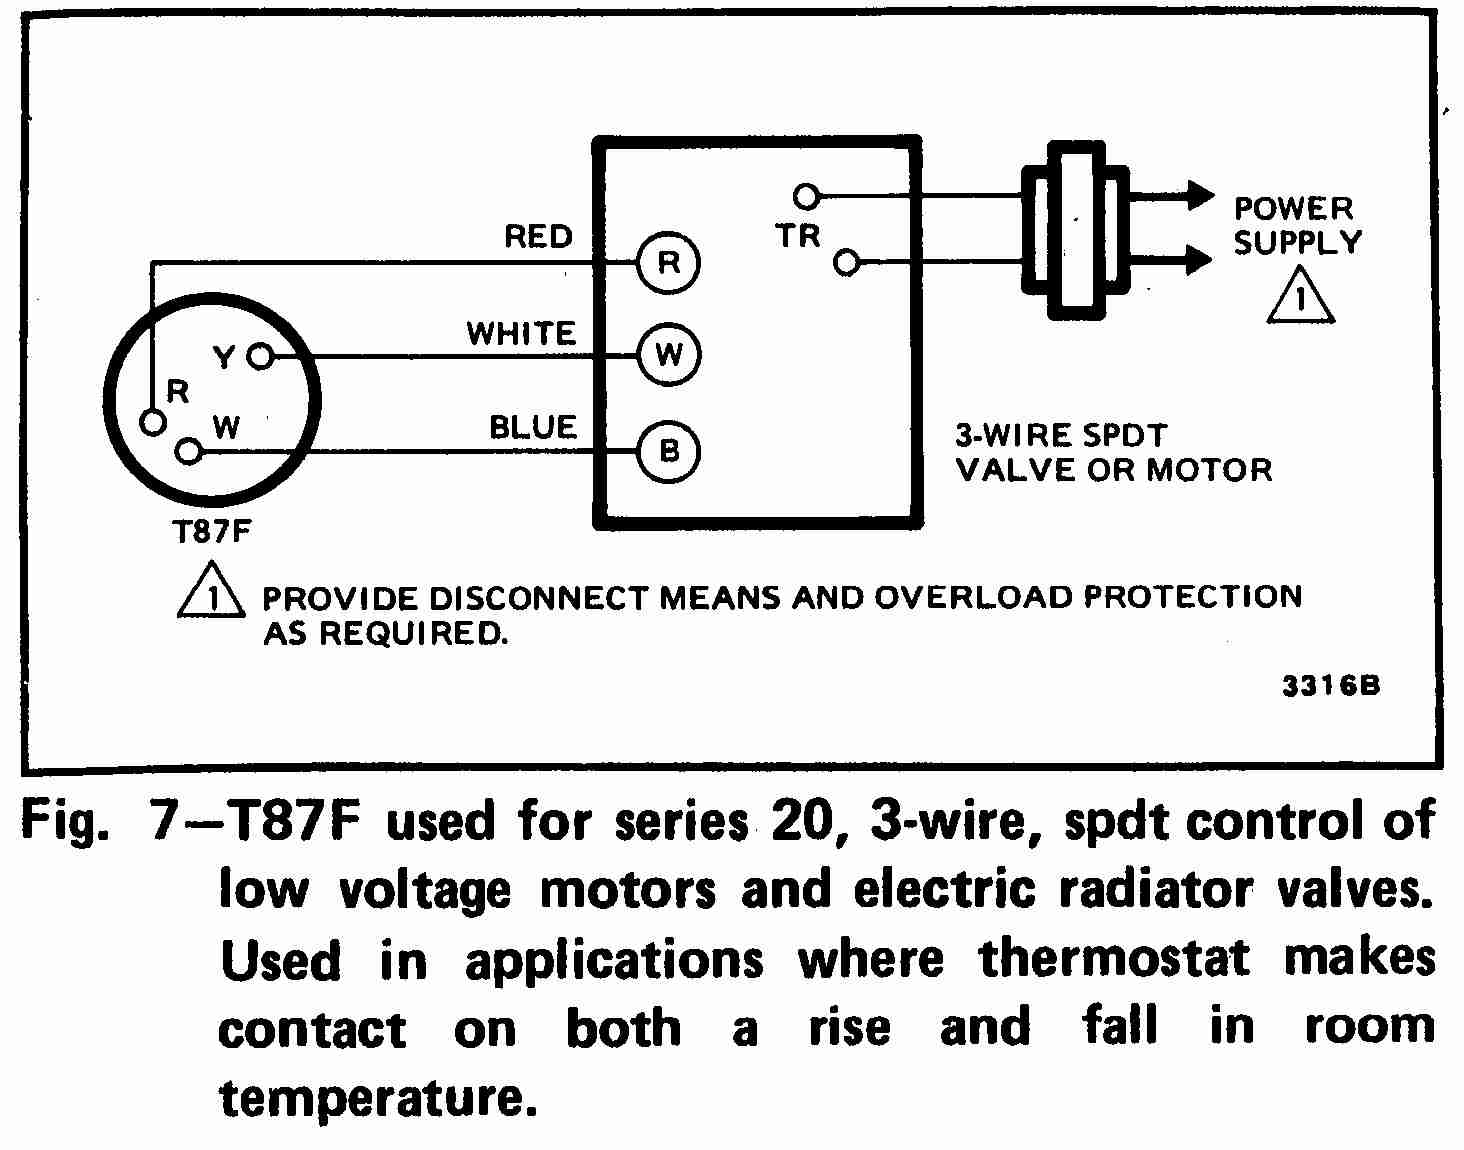 TT_T87F_0002_3W2_DJF room thermostat wiring diagrams for hvac systems fcu wiring diagram at honlapkeszites.co